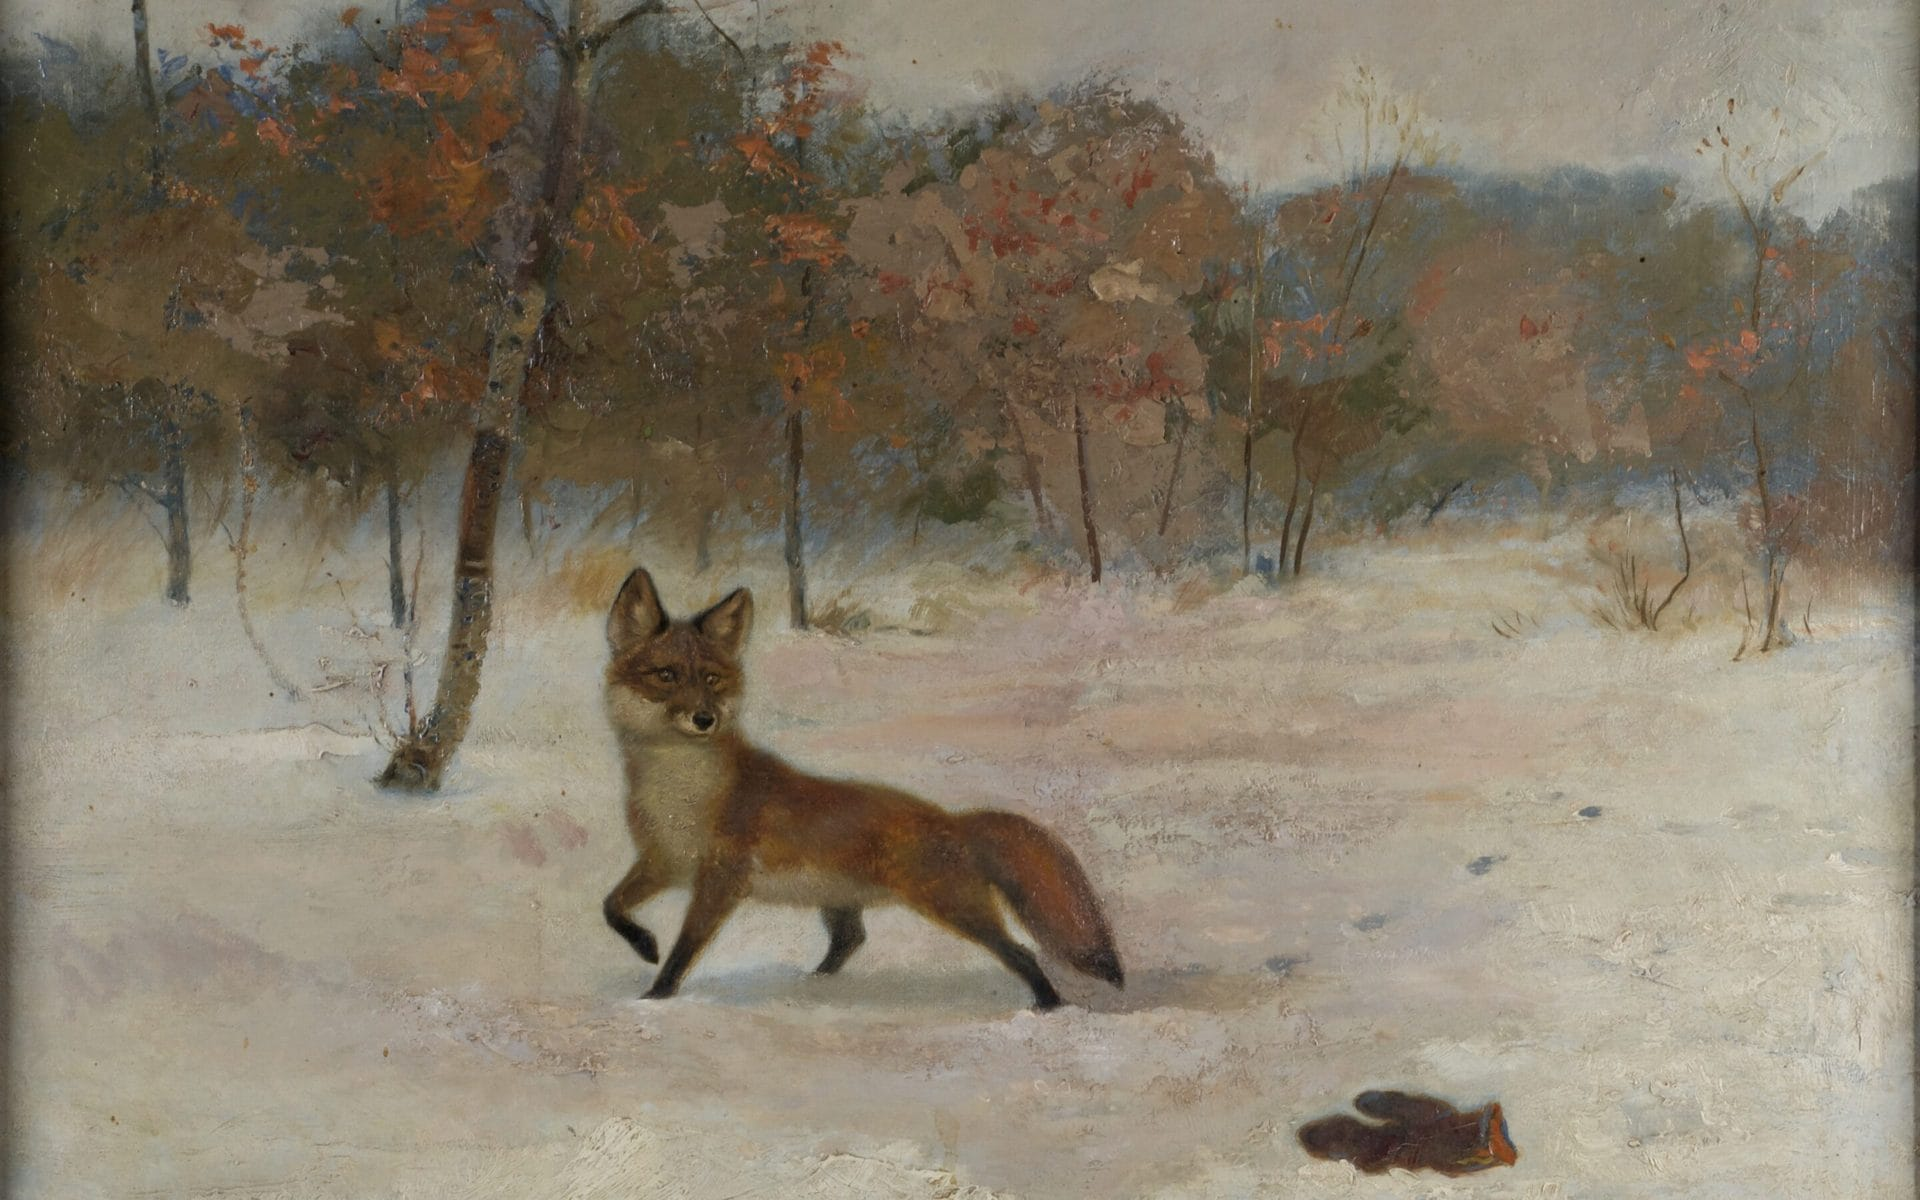 Fox and Mitten Painting by Ernest Thompson Seton